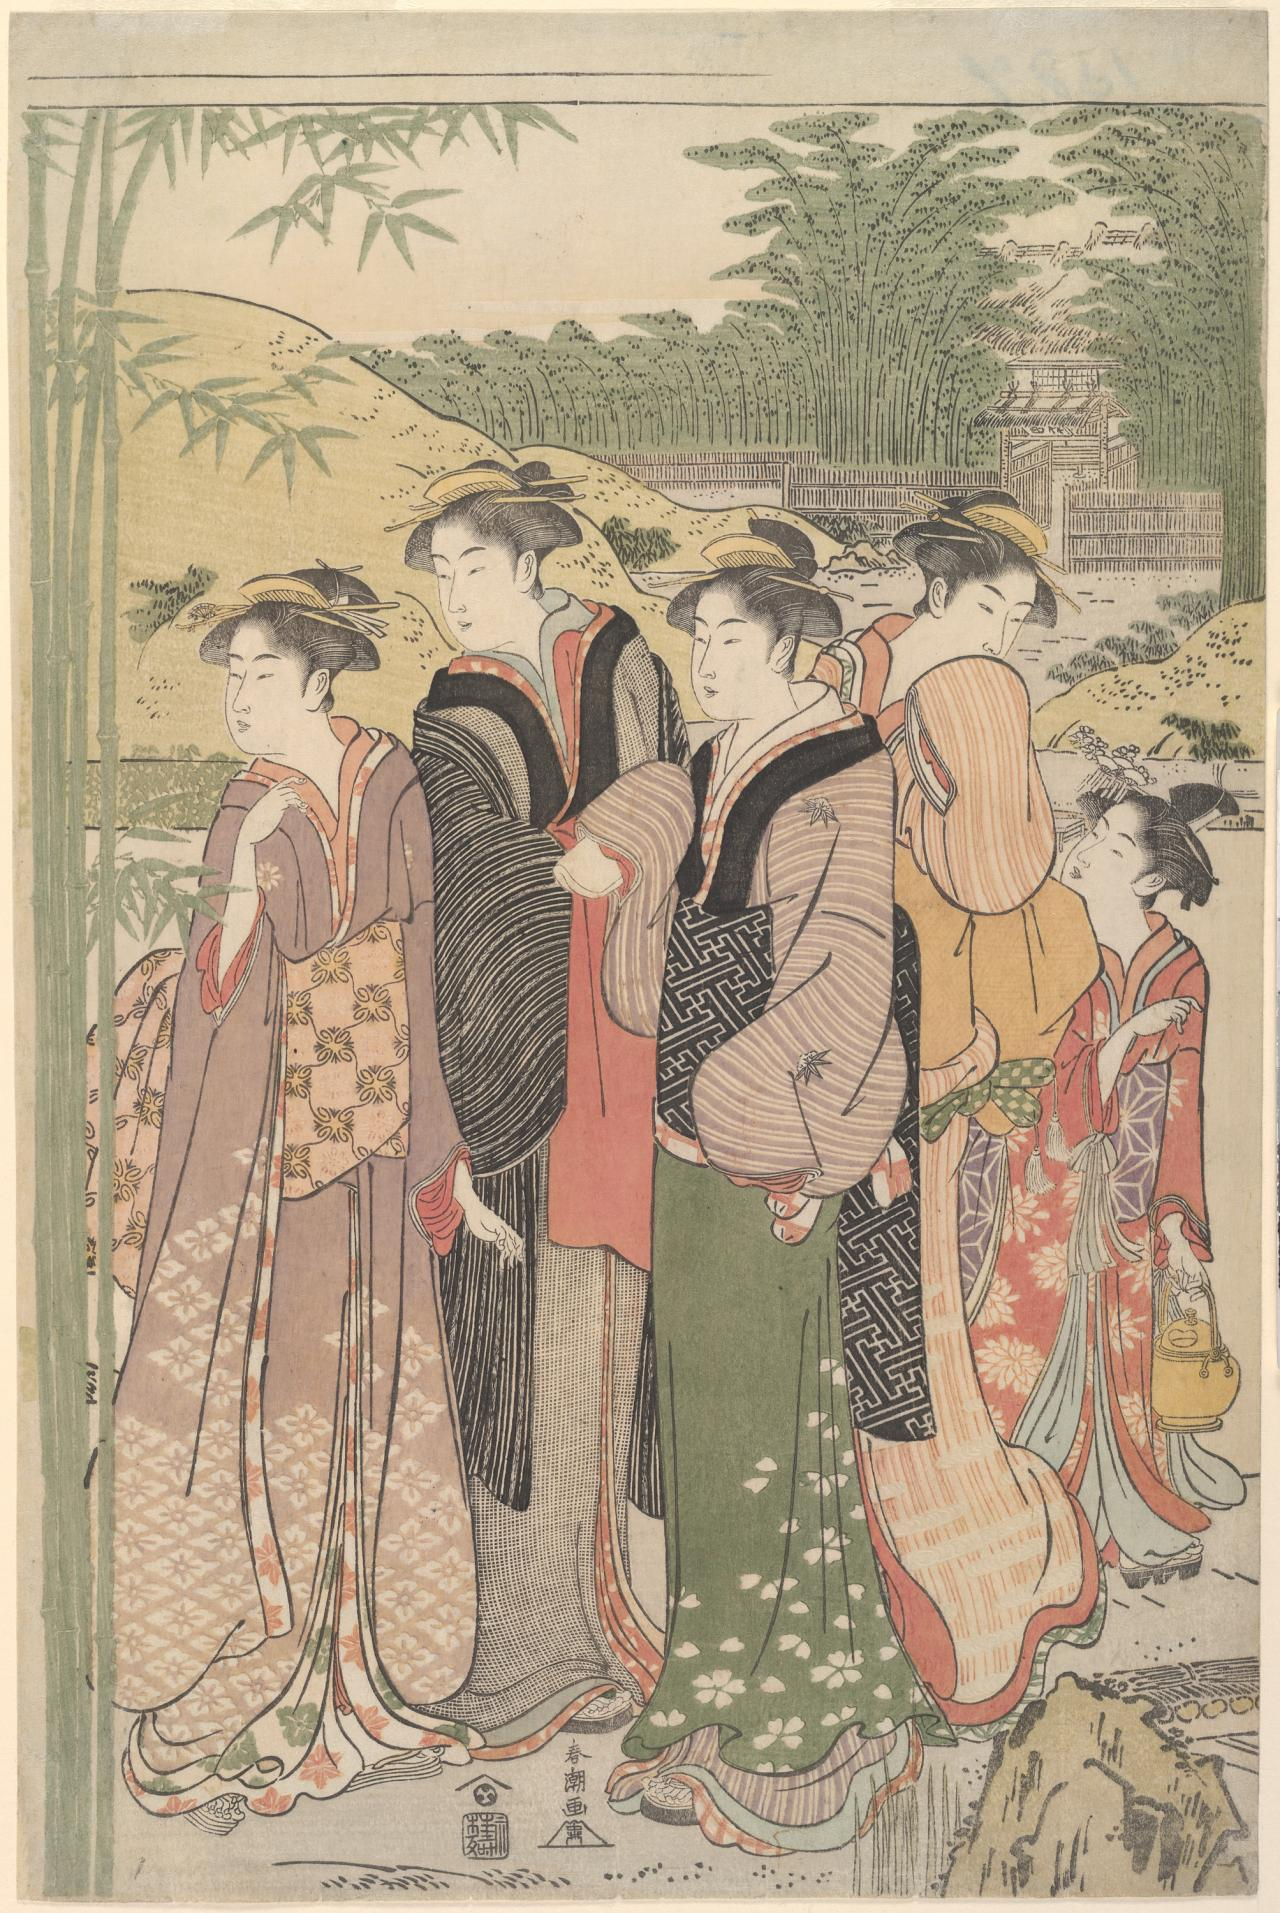 Parody of the seven sages of the bamboo grove